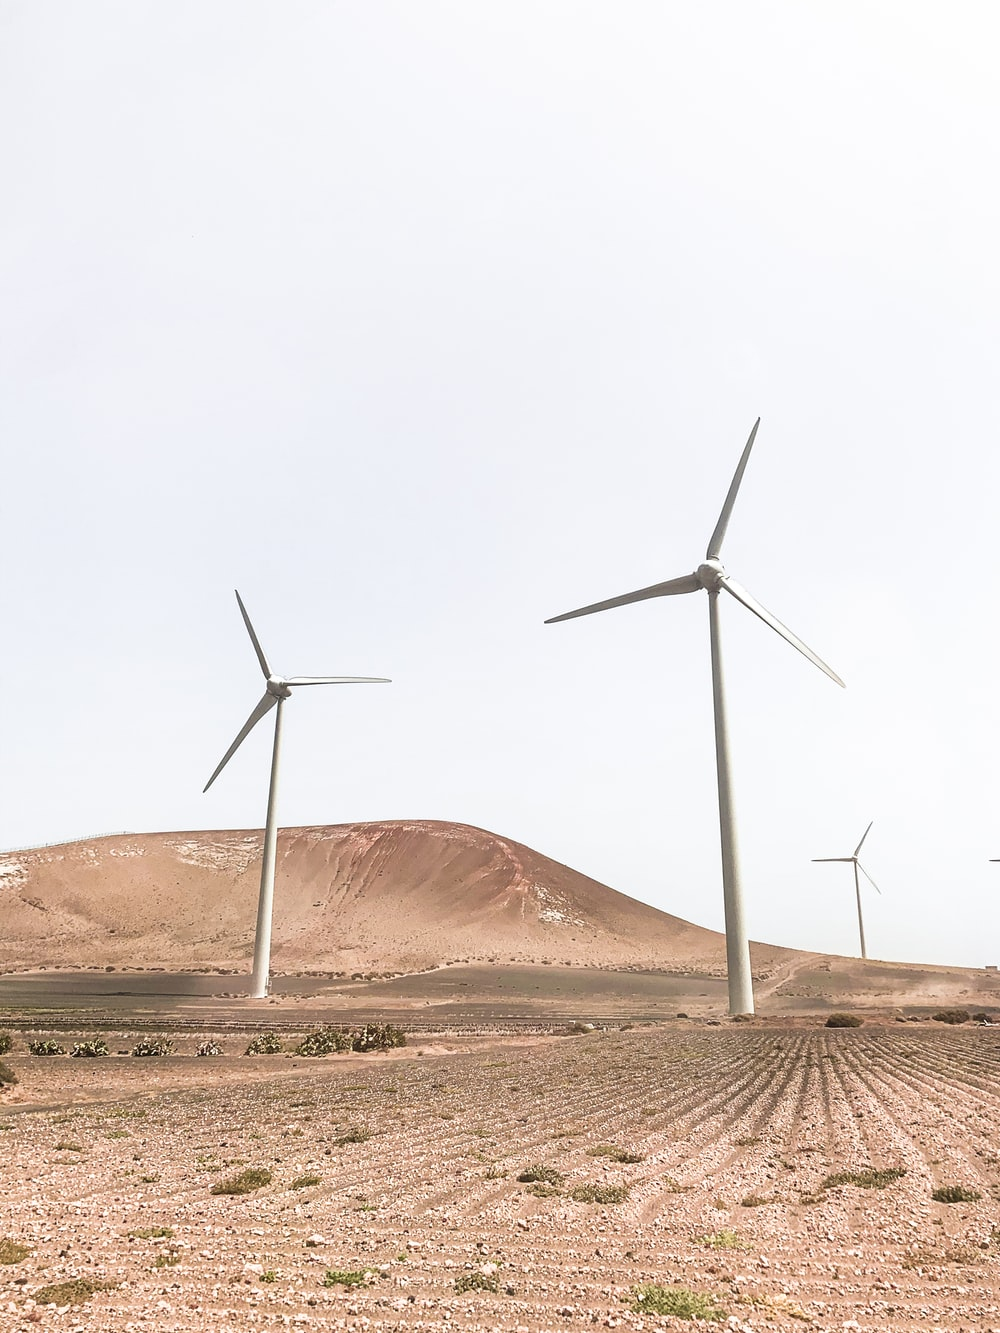 wind turbines on brown sand under white sky during daytime